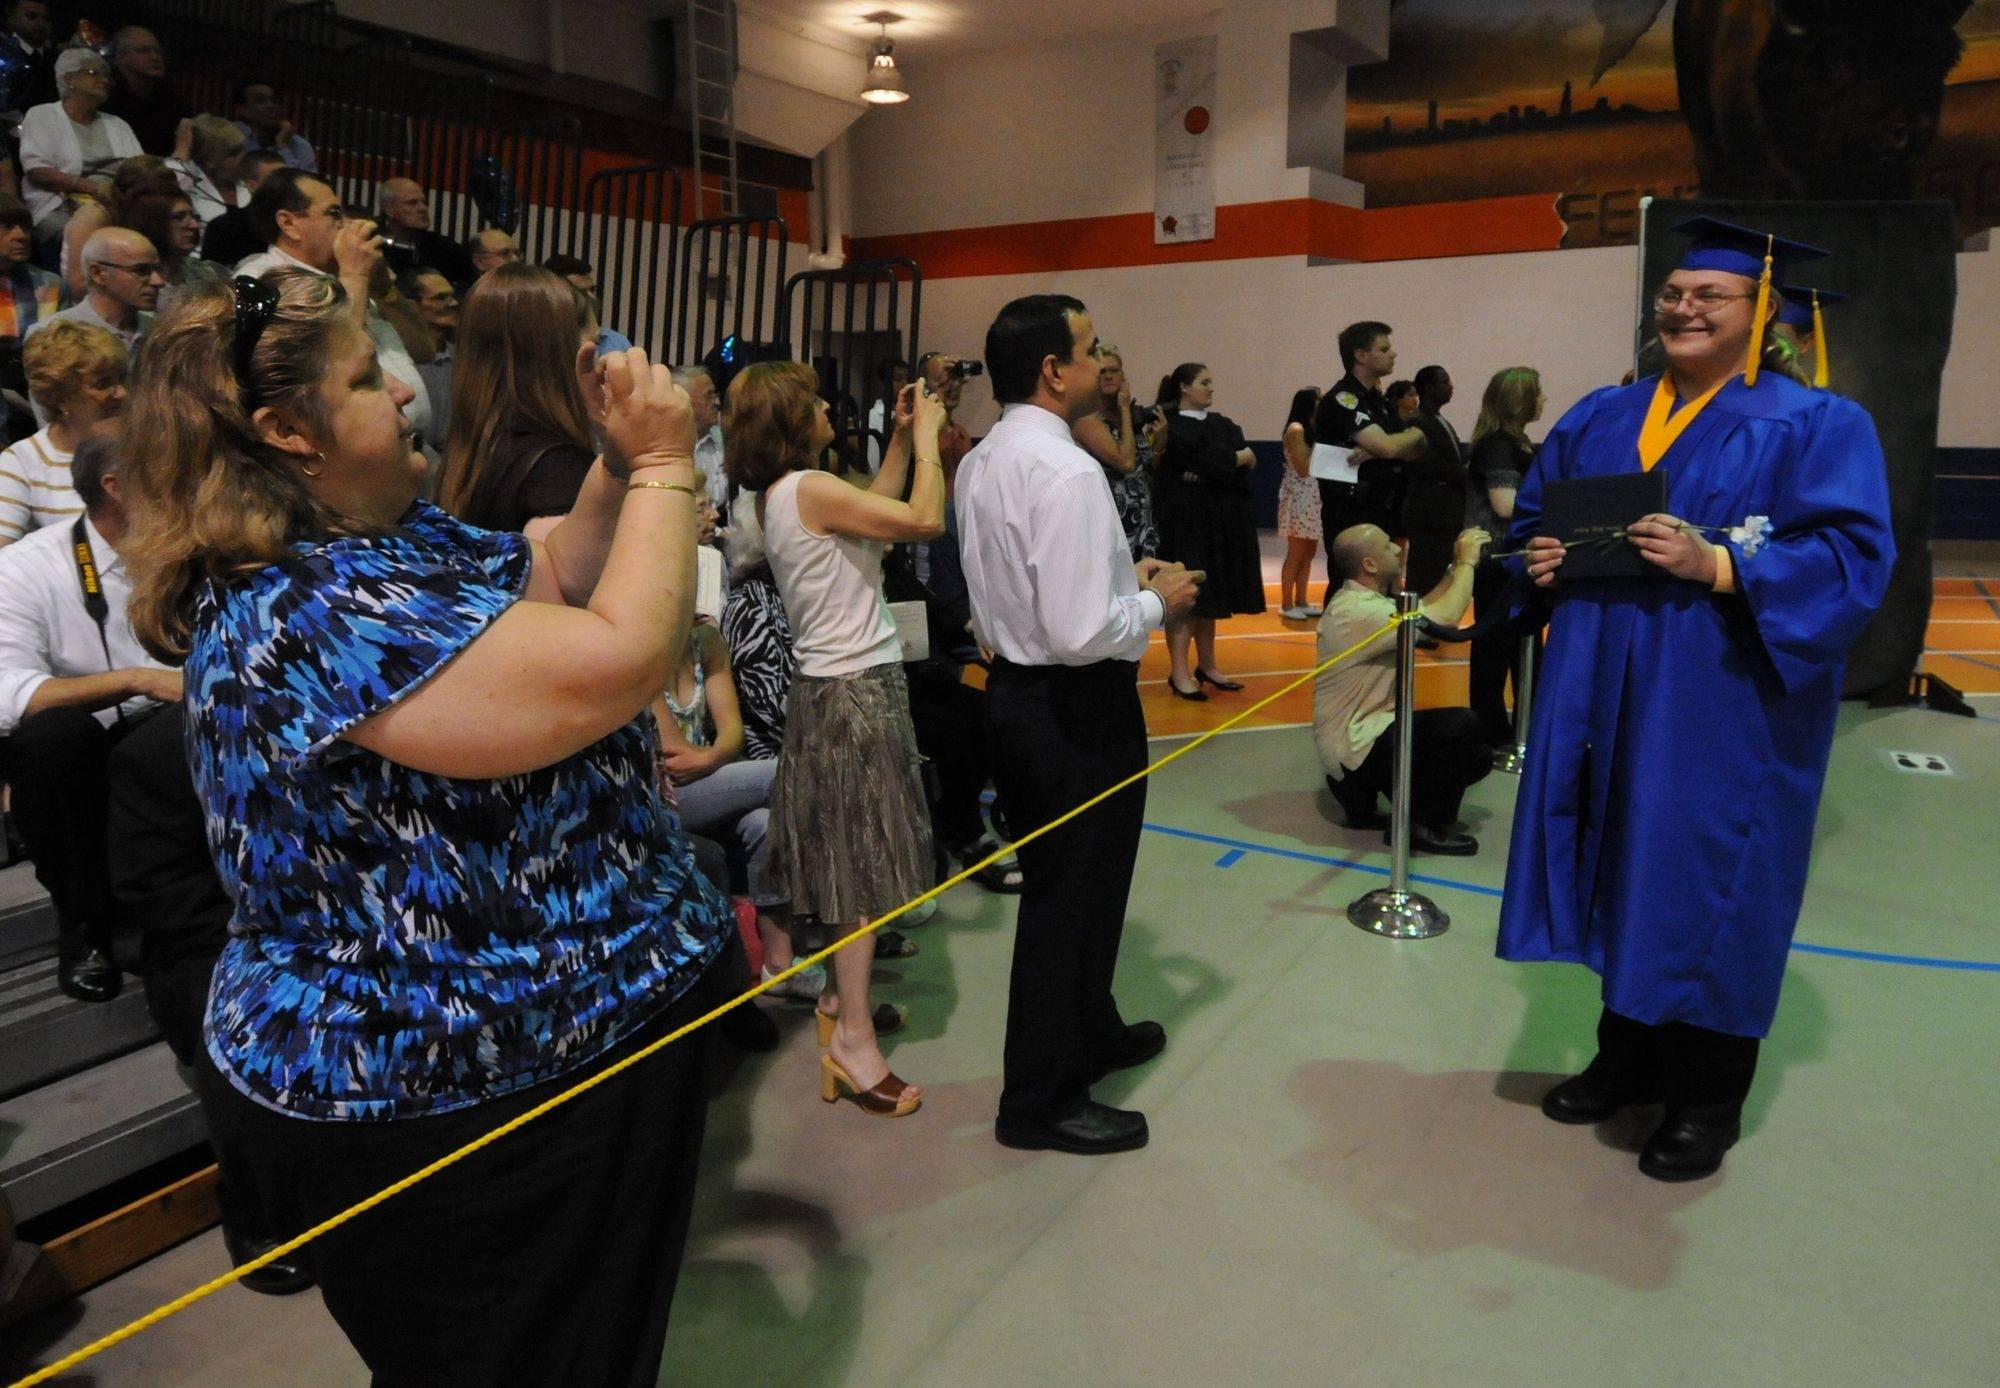 Graduation ceremonies take place Sunday, May 23, 2010 at Fenton High School in Bensenville.